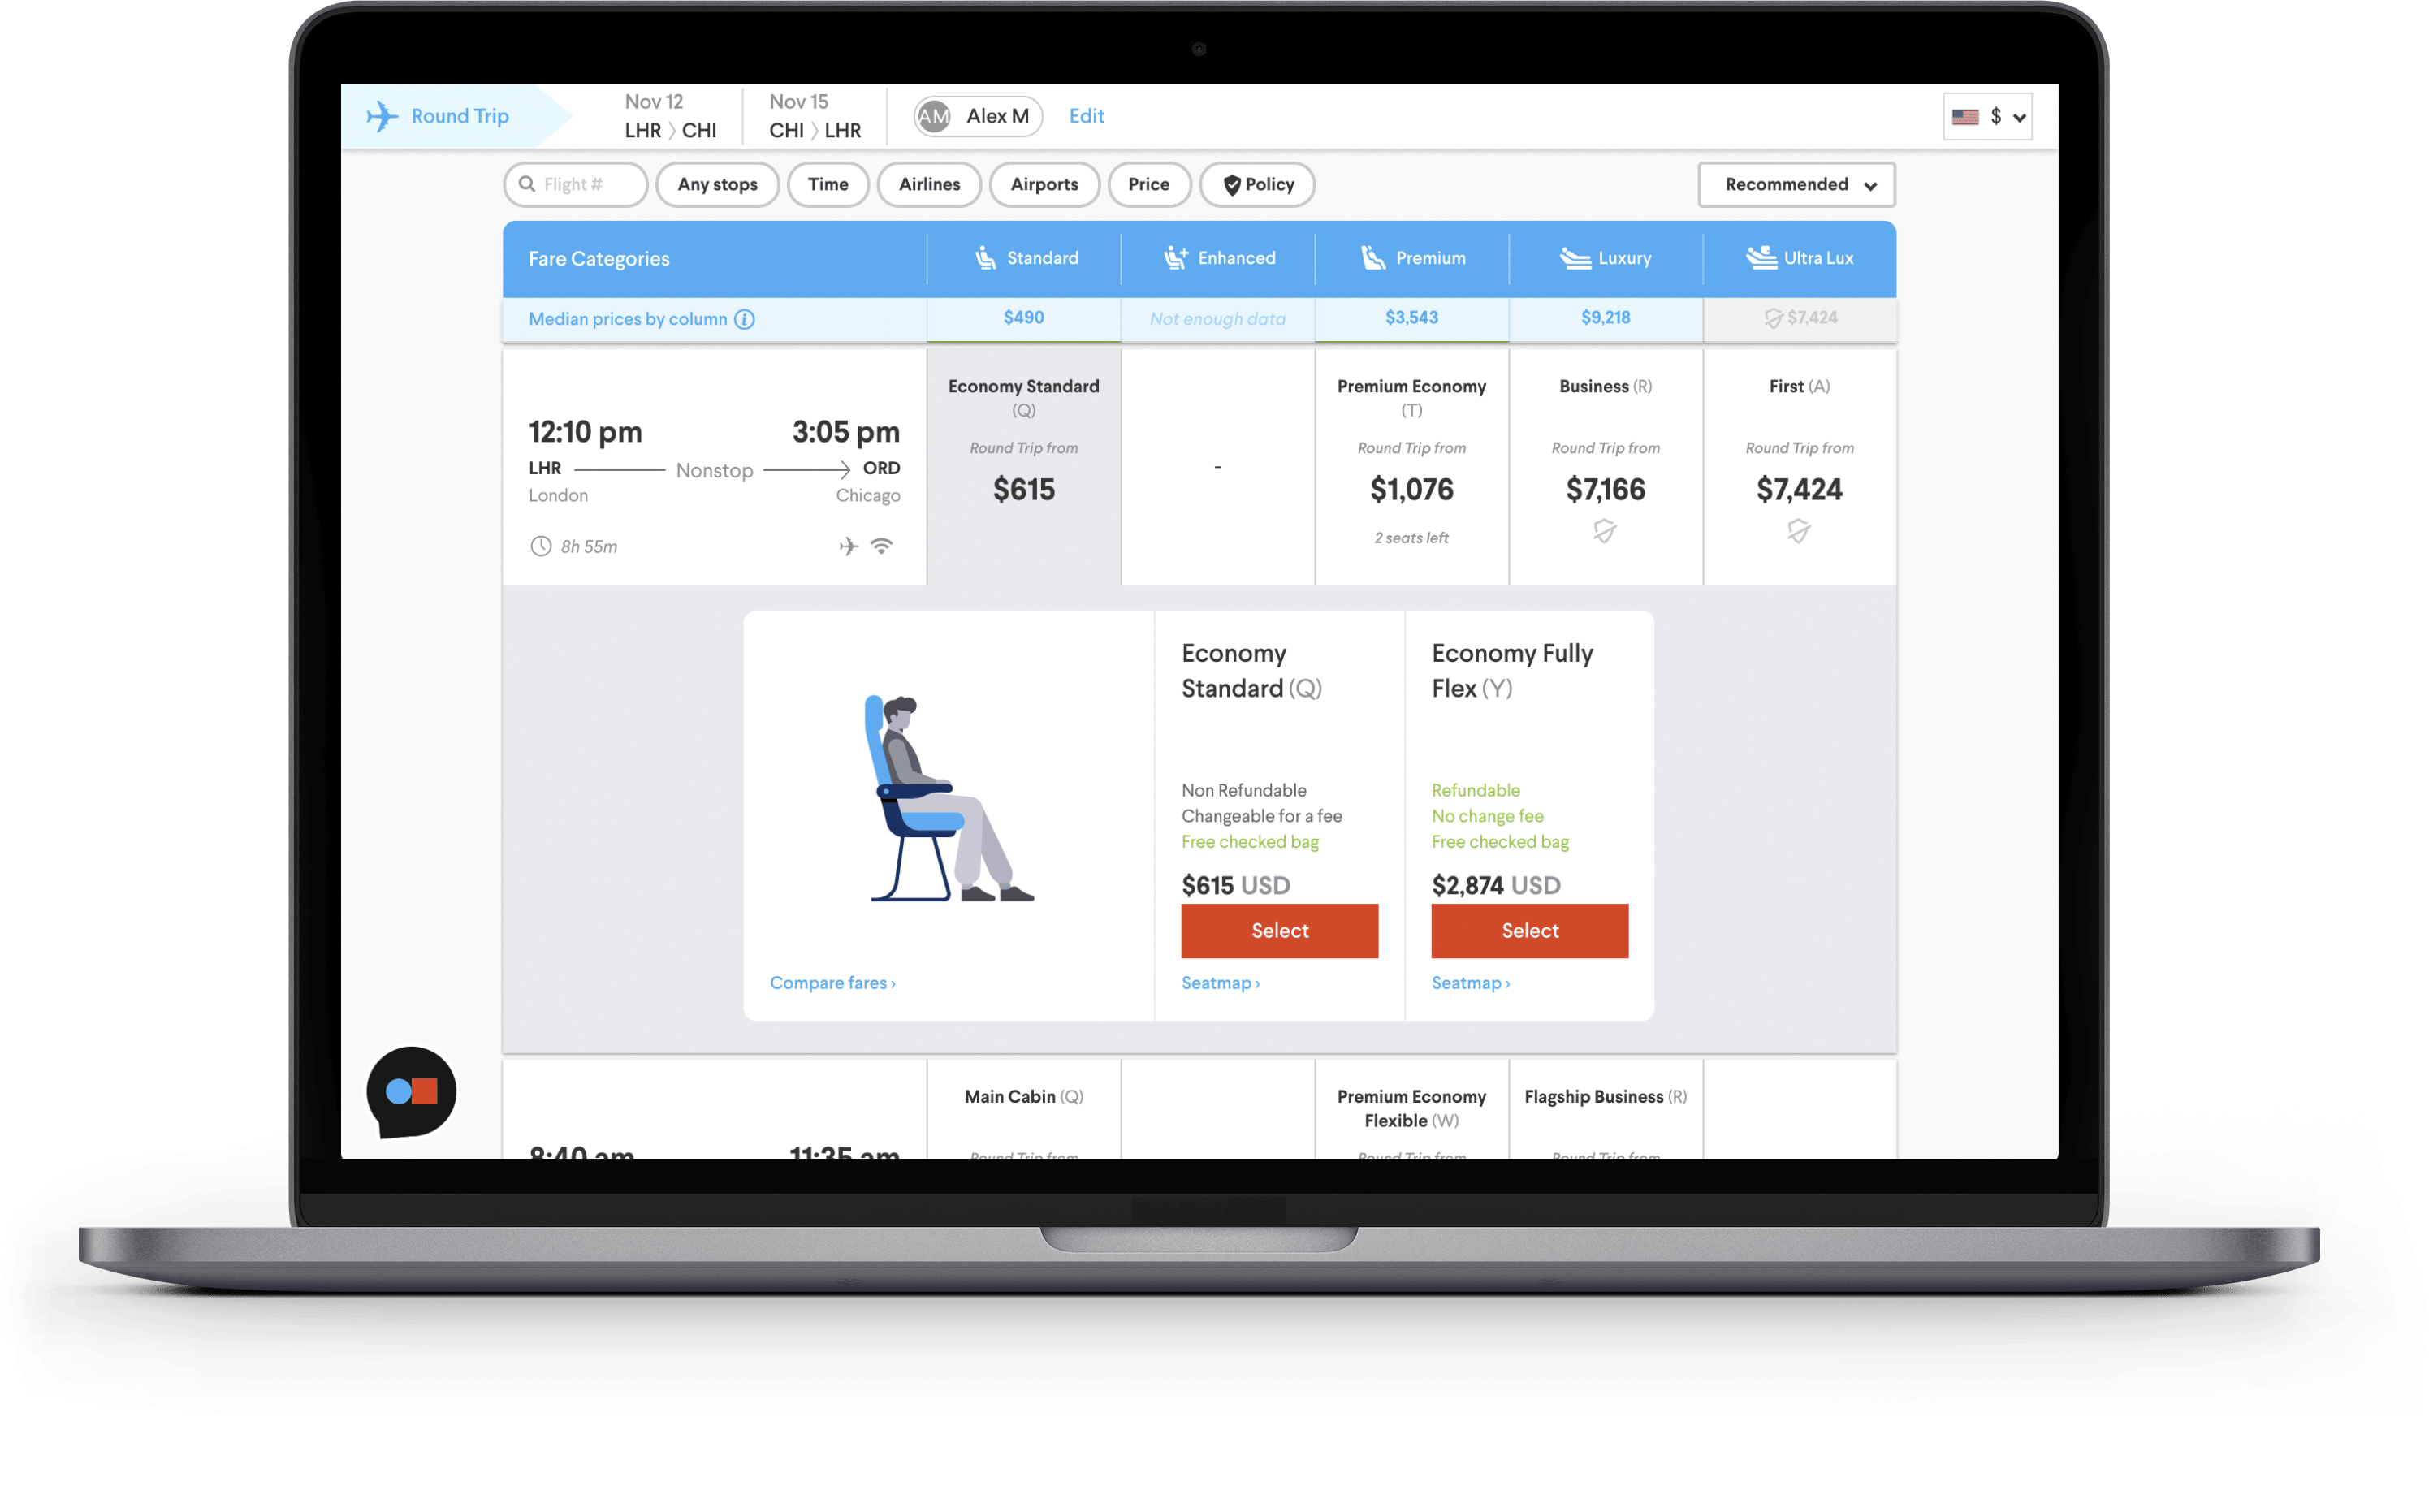 TripActions Product Screenshot - Seat comparison in search interface